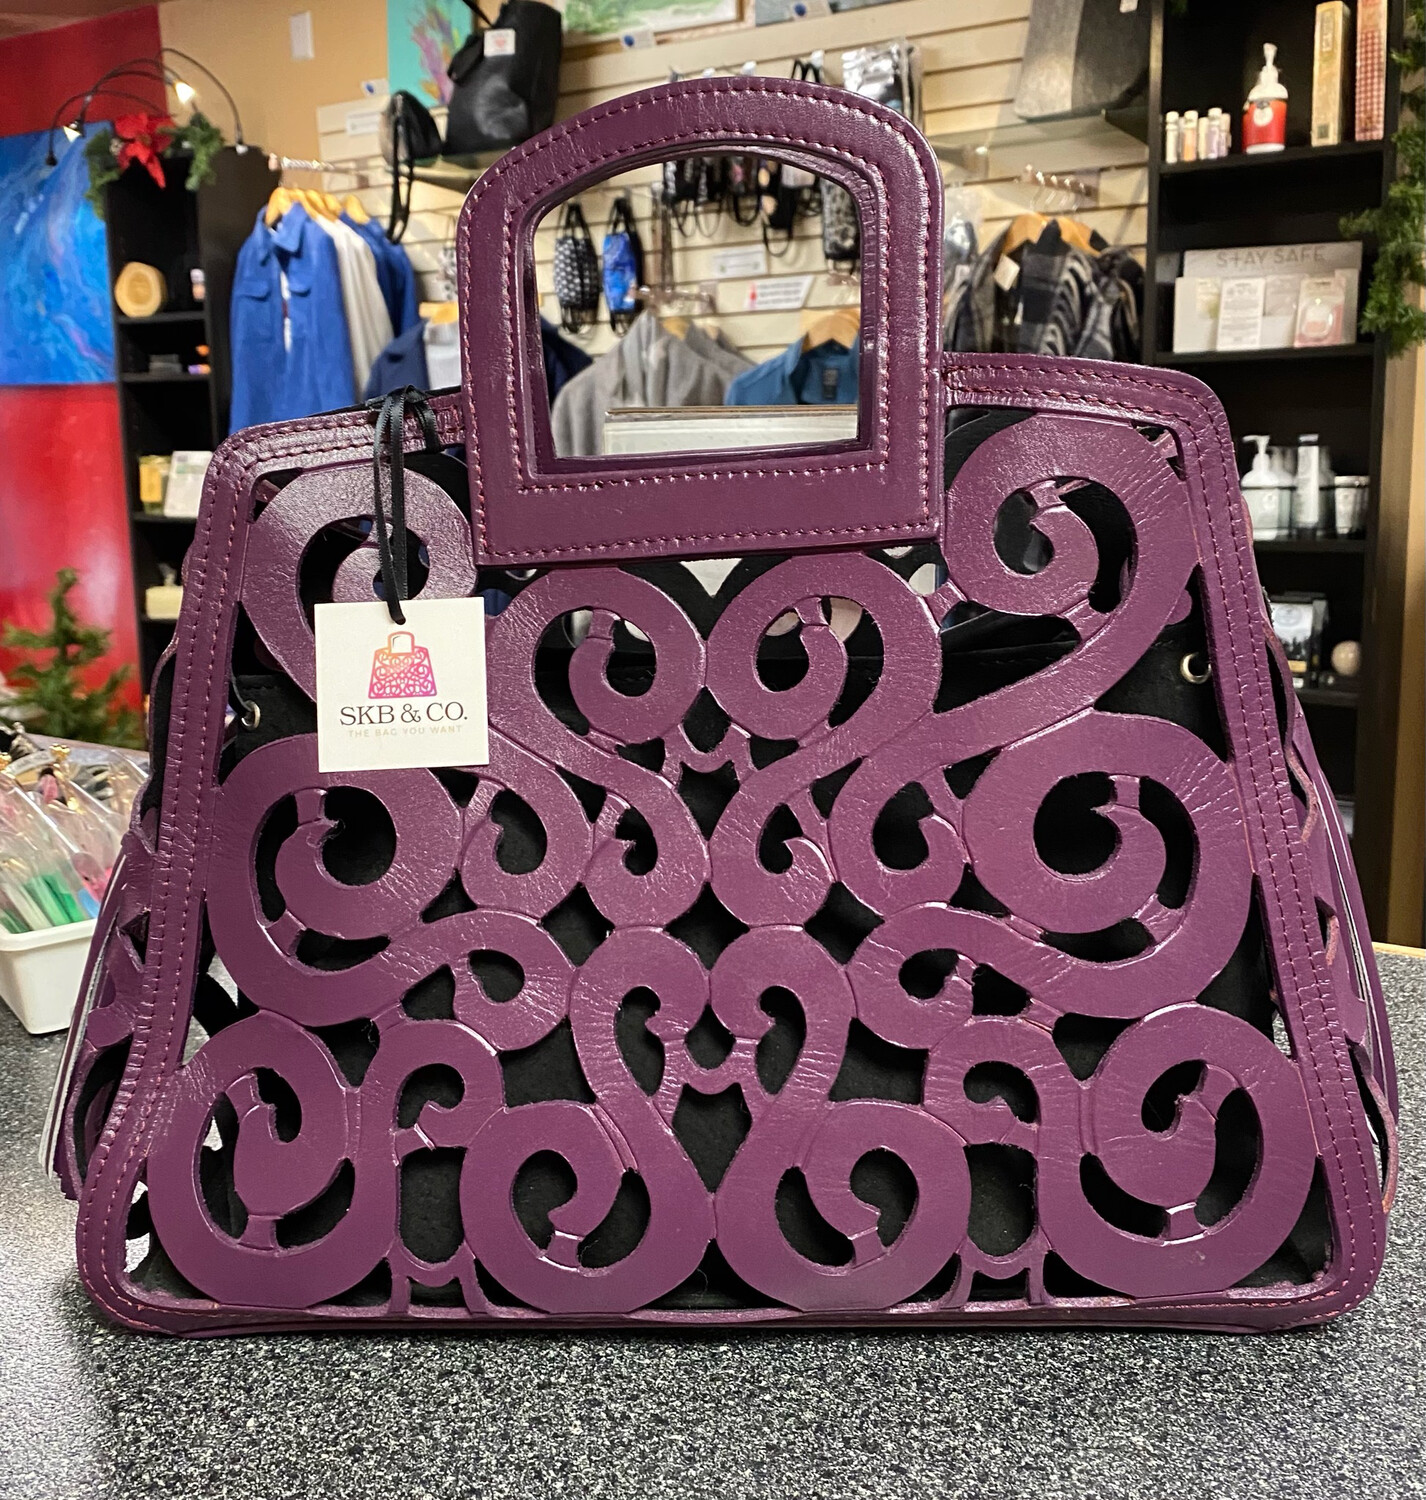 SKB & Comp. This Is A Hand Died Filigree Saddle Leather Hand Tooled Bag With A Suede Interior Gorgeous Purple.